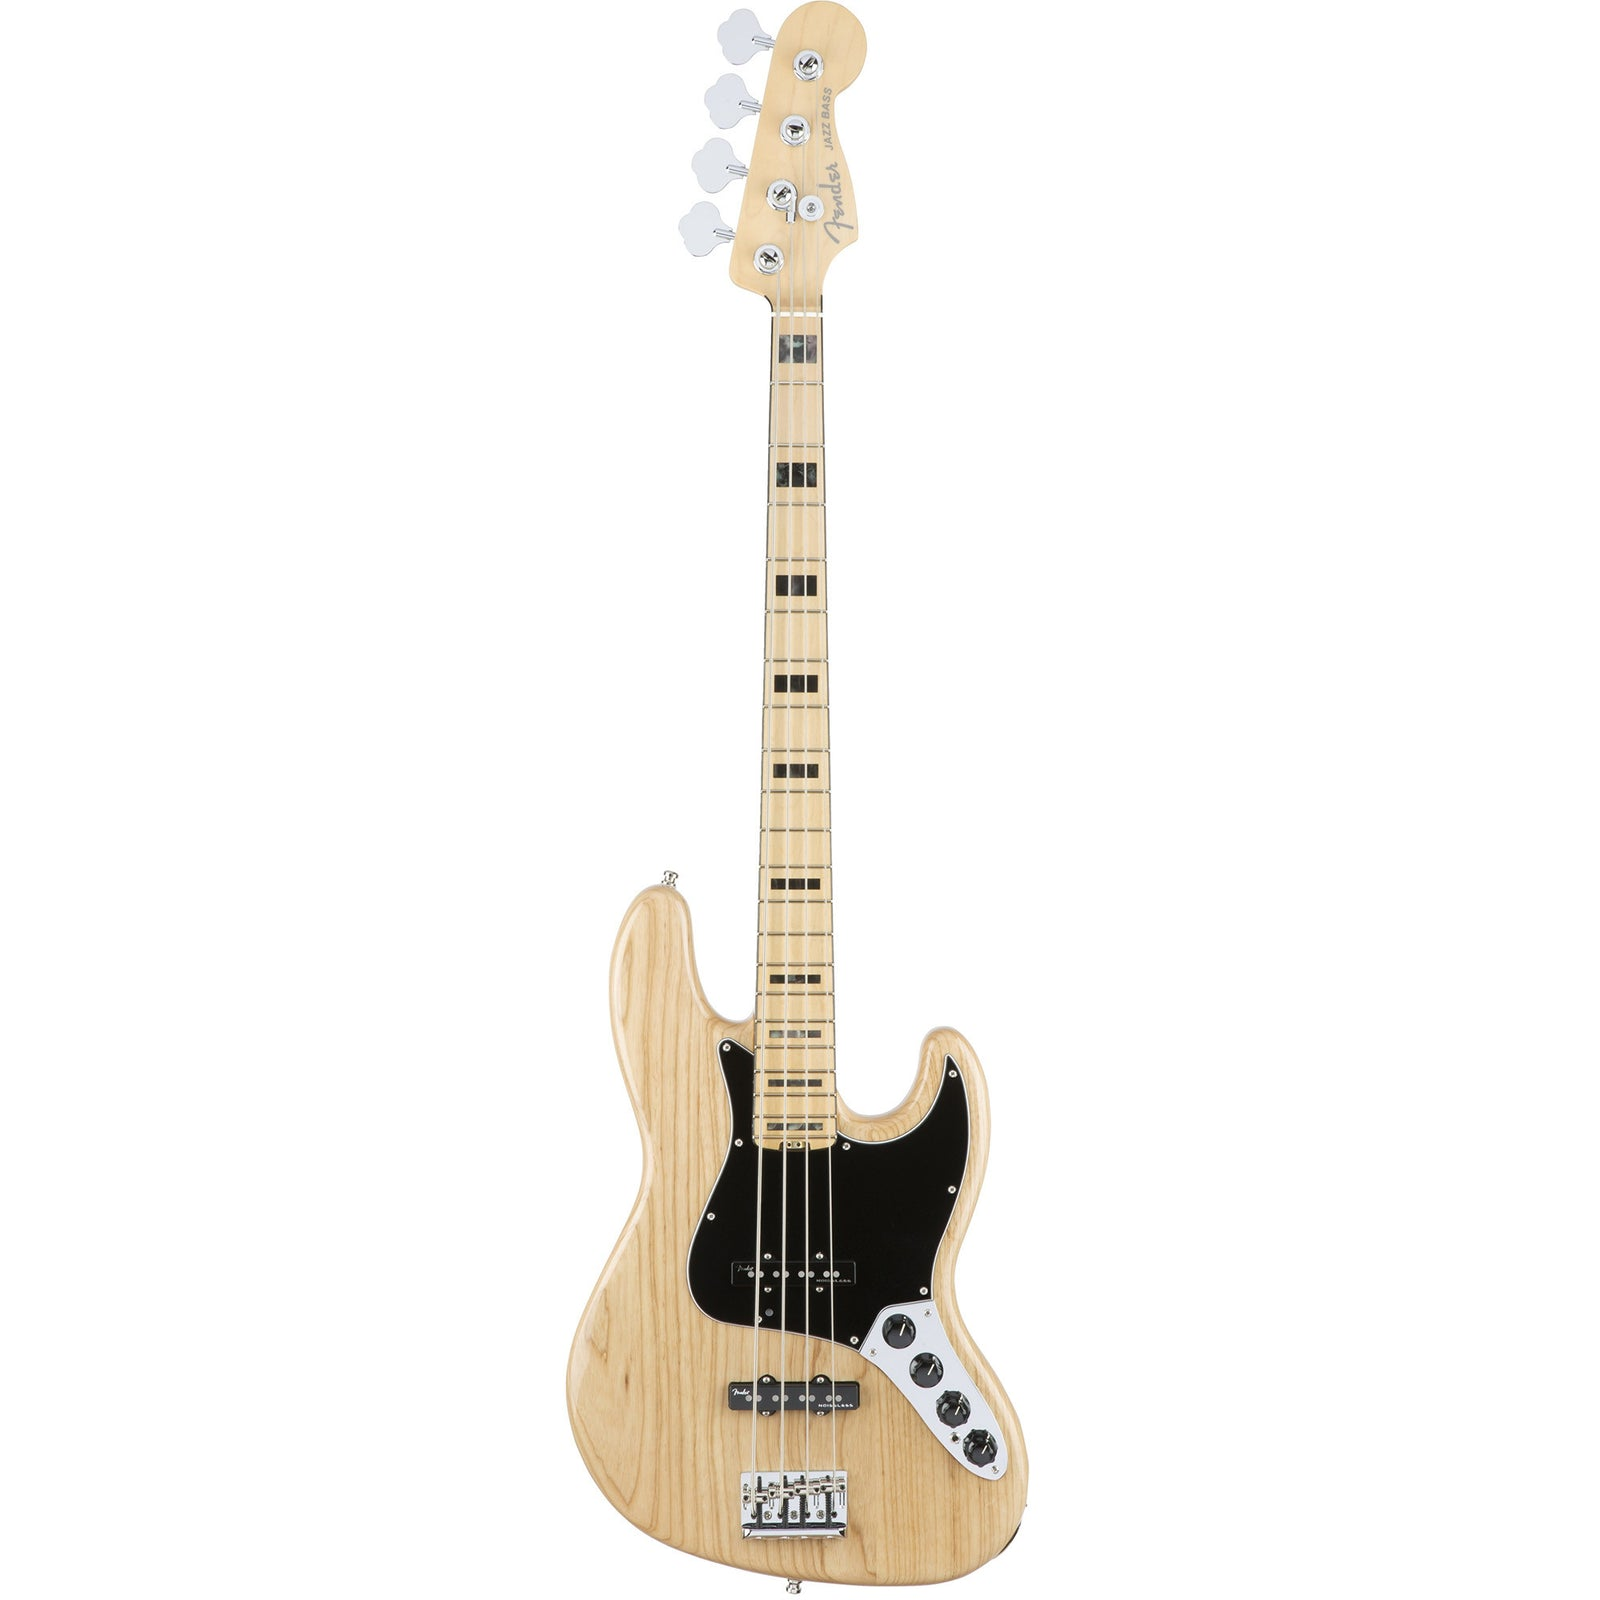 Fender American Elite Jazz Bass Ash Maple Neck - Natural